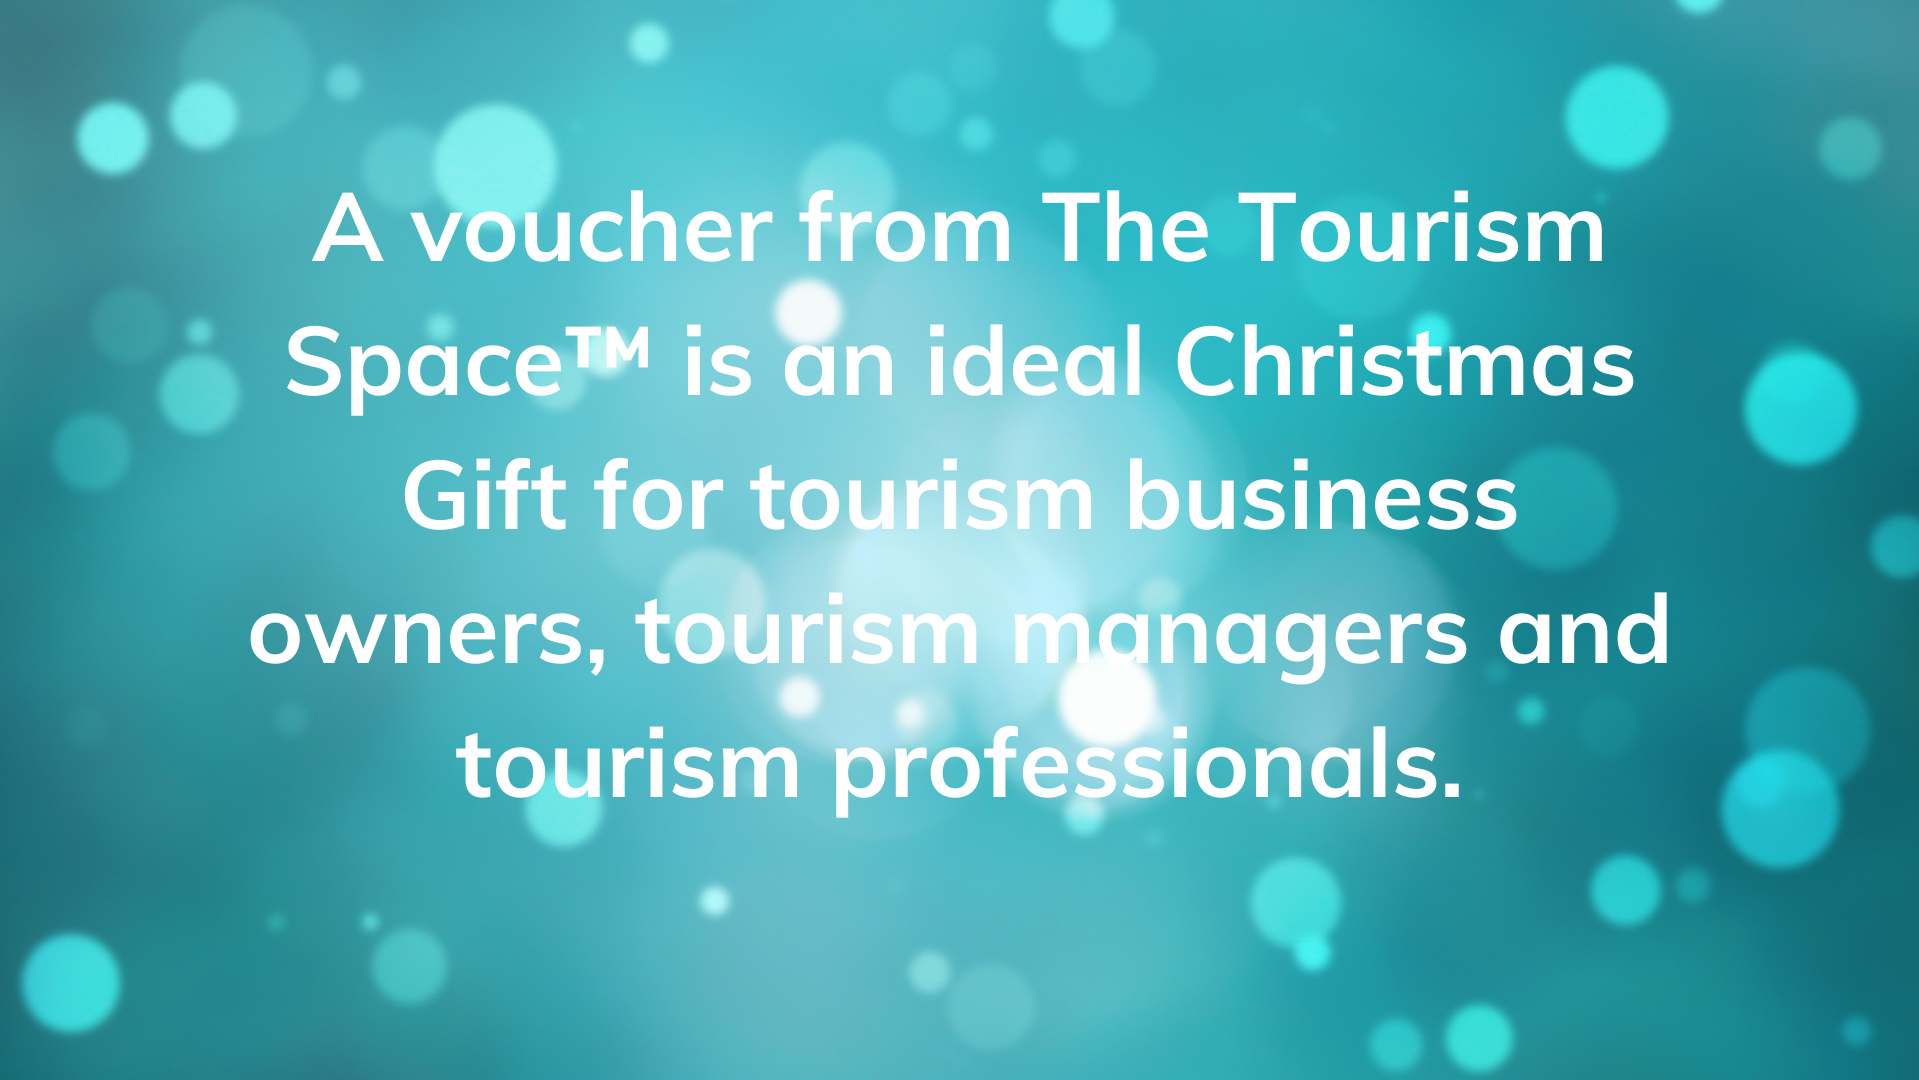 The Tourism Space Voucher is a Christmas Gift for tourism business owners, tourism managers and tourism professionals